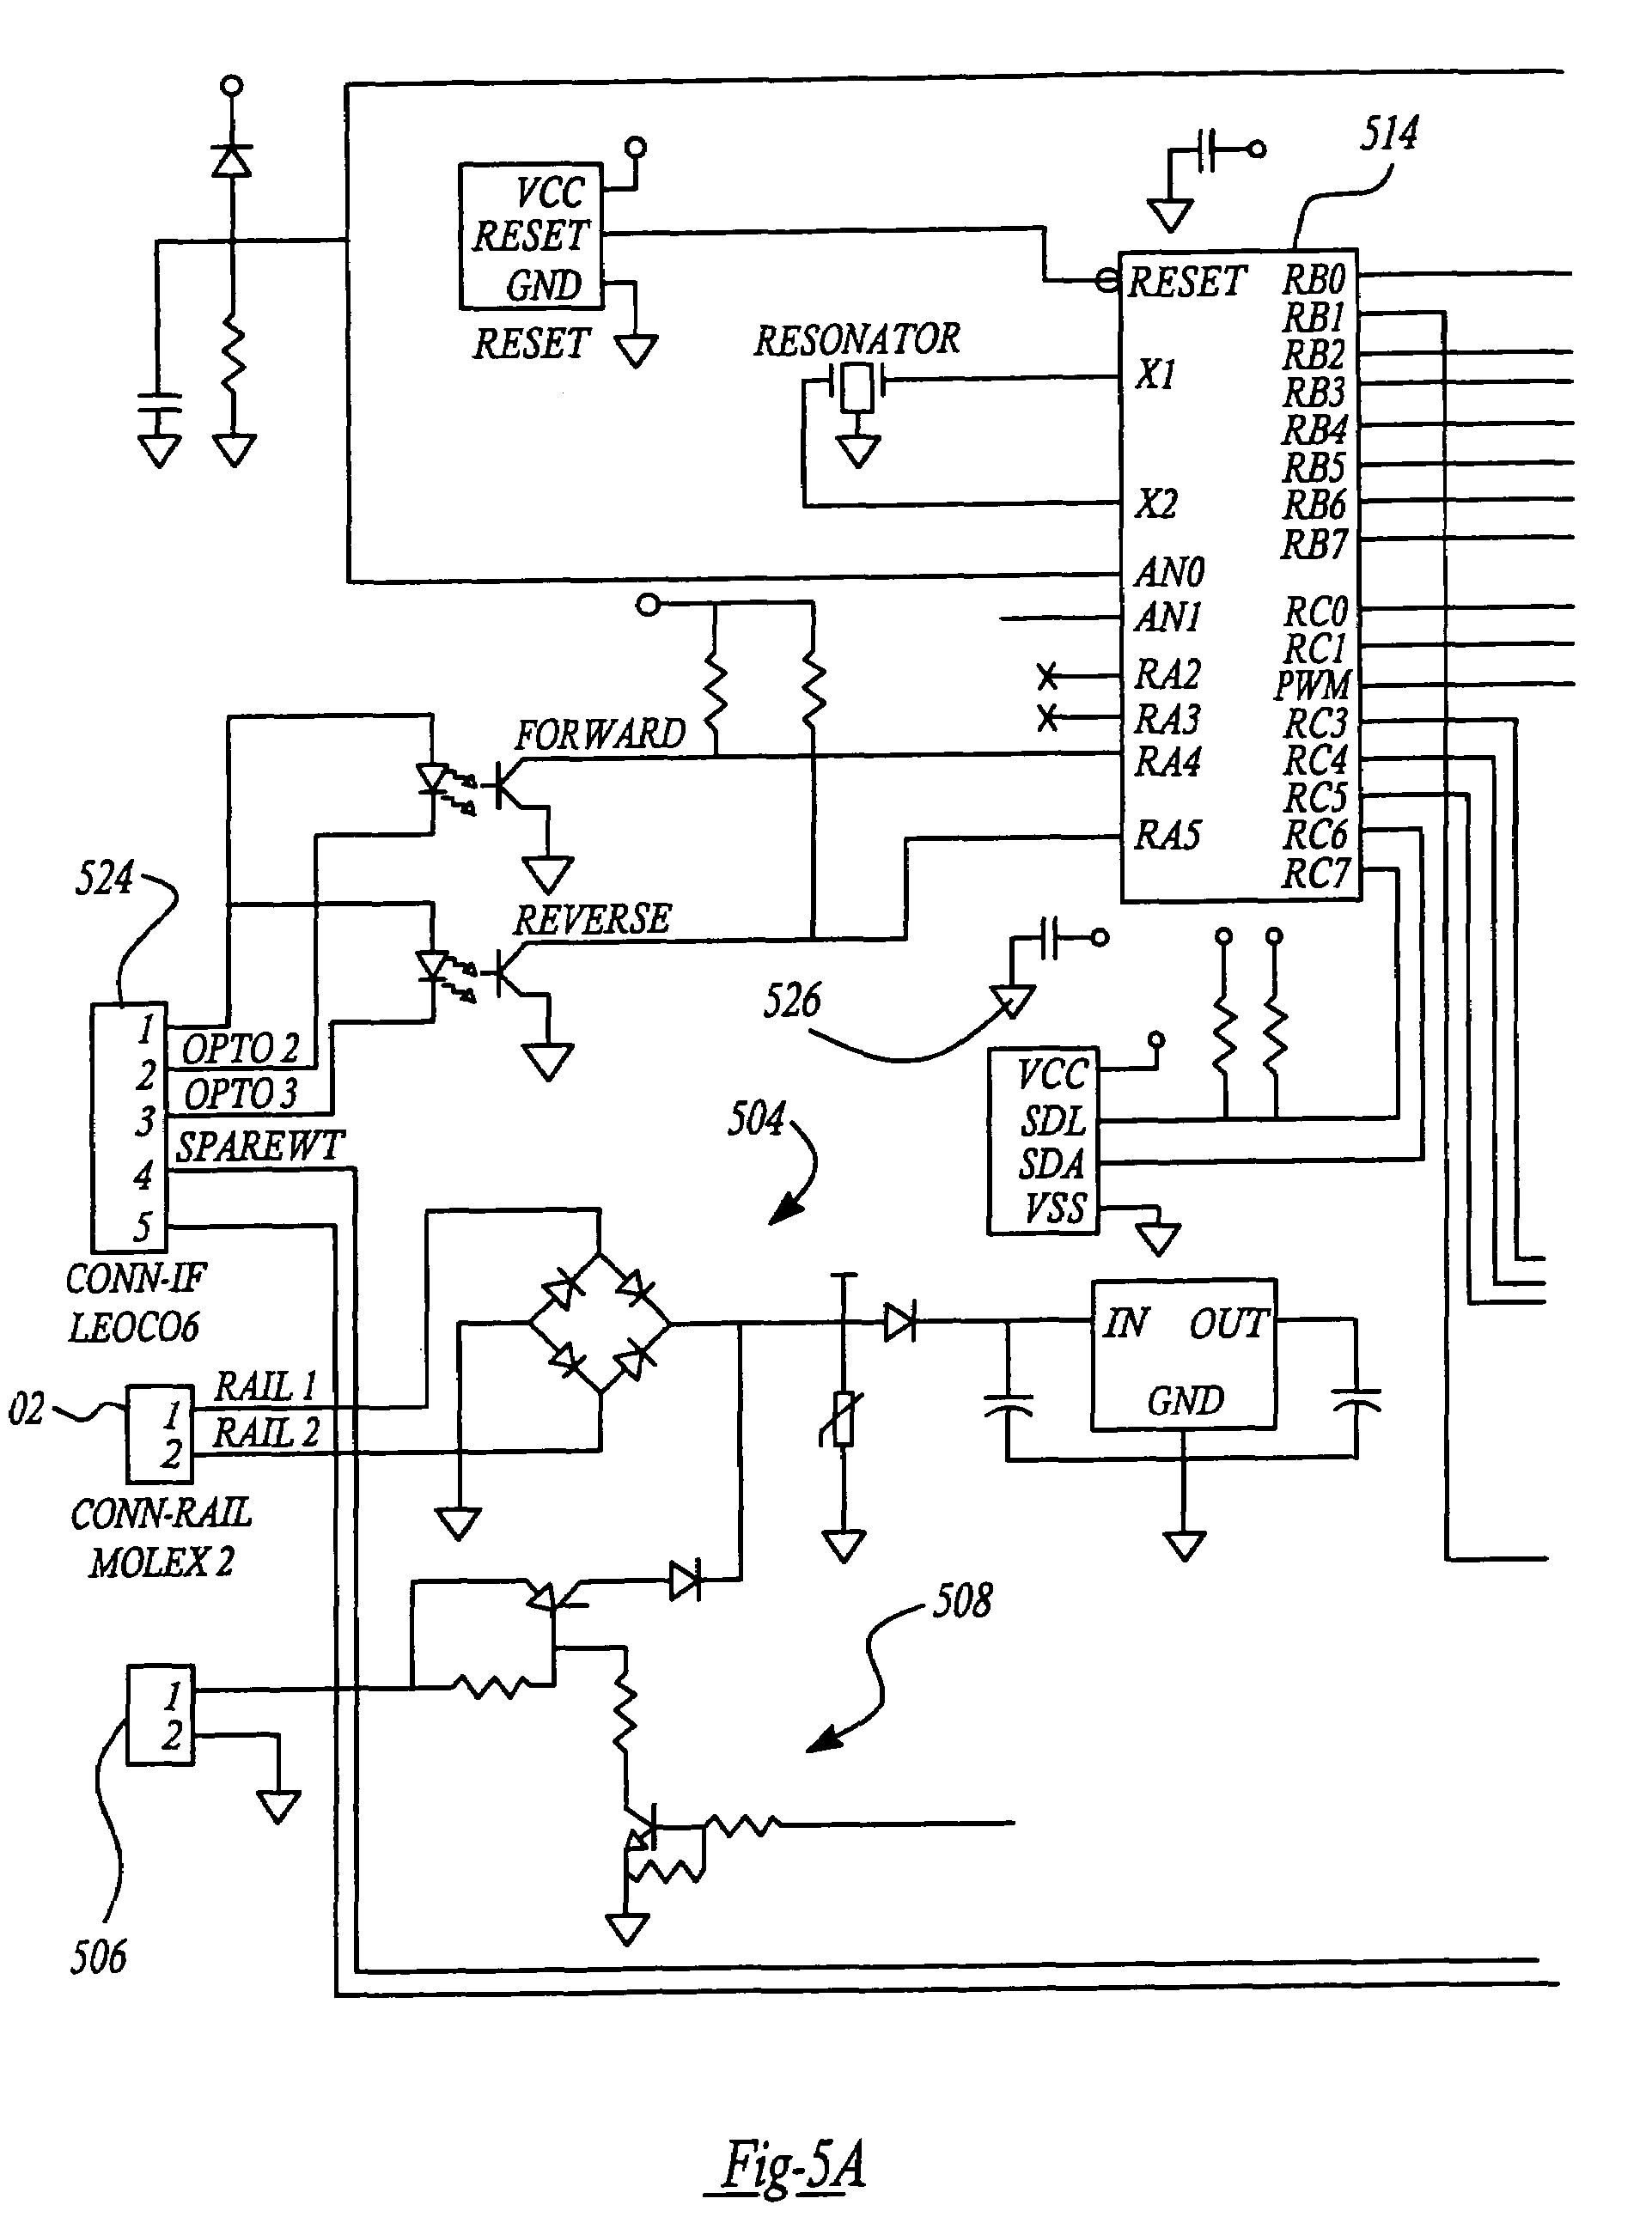 Tomos Moped Wiring Diagram Library Dtmf Decoder Circuit Honda Wave 100 Engine Circuits Encoding And Decoding Six Channel Infrared Remote Of